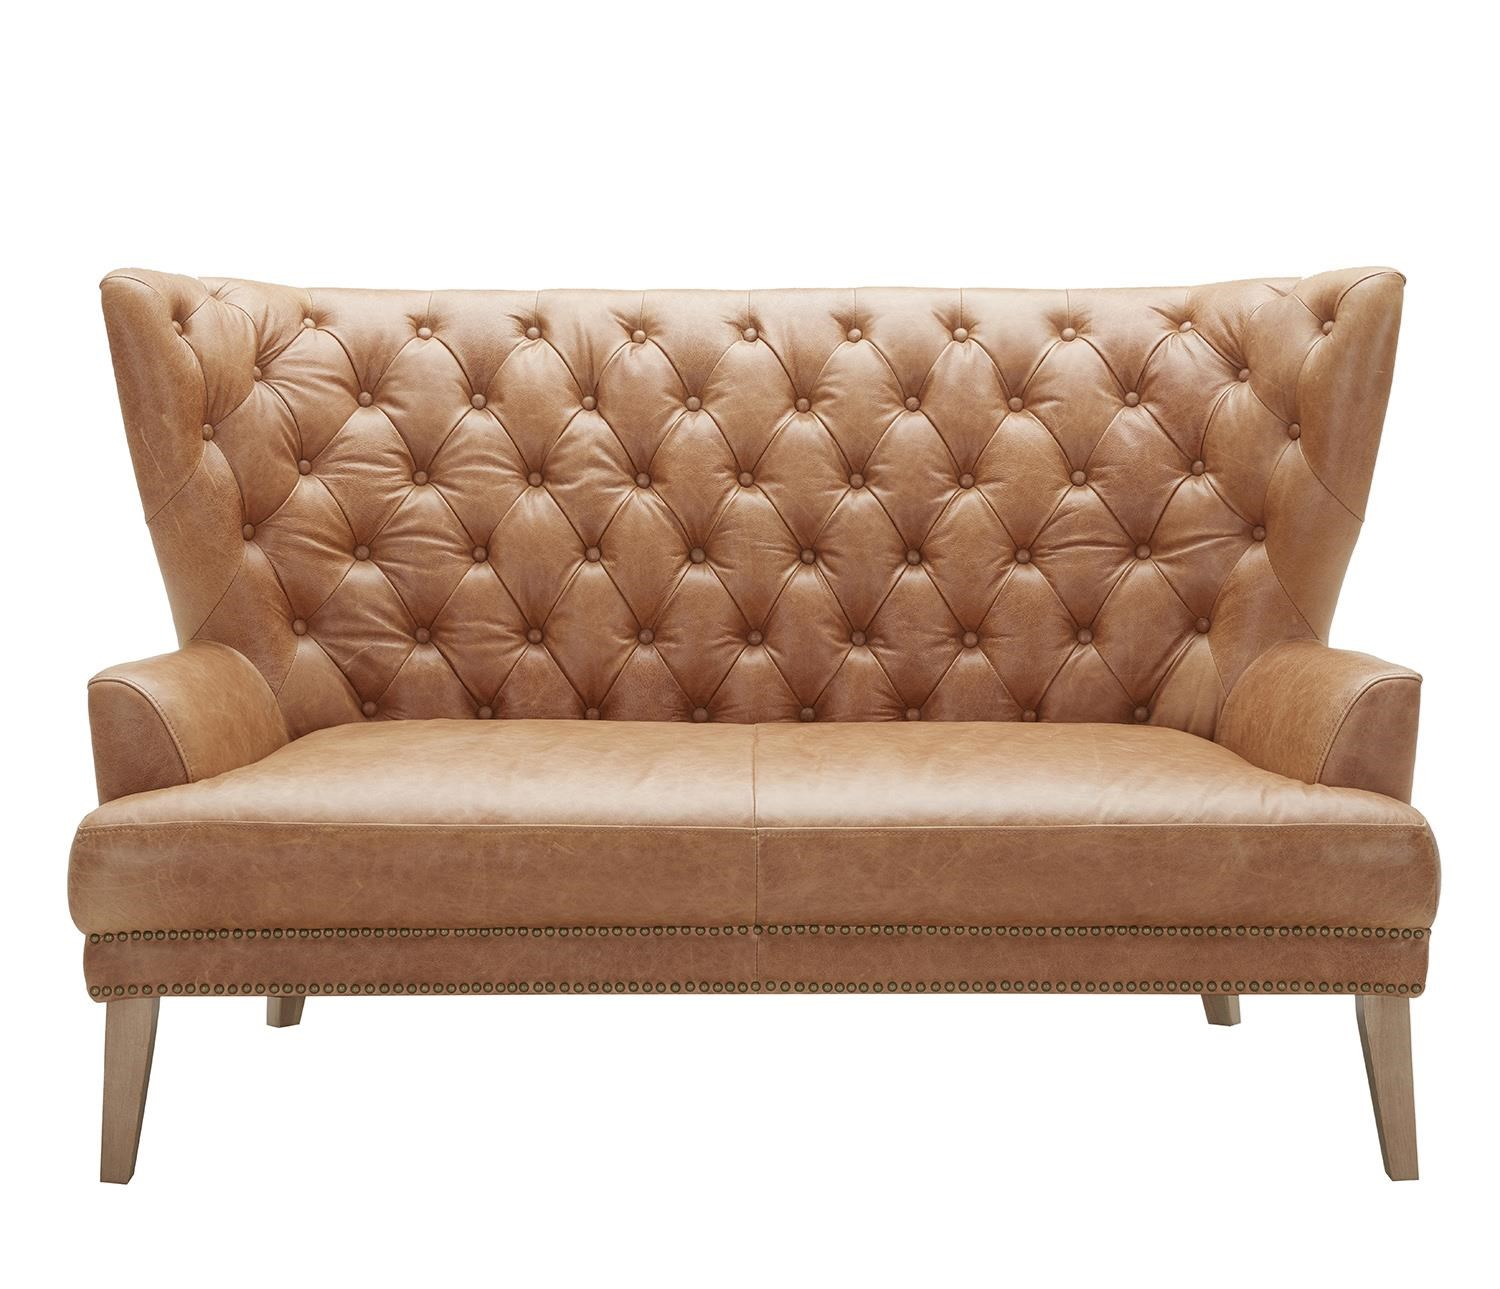 Grandin Tufted Leather Settee by Urban Evolution at Belfort Furniture